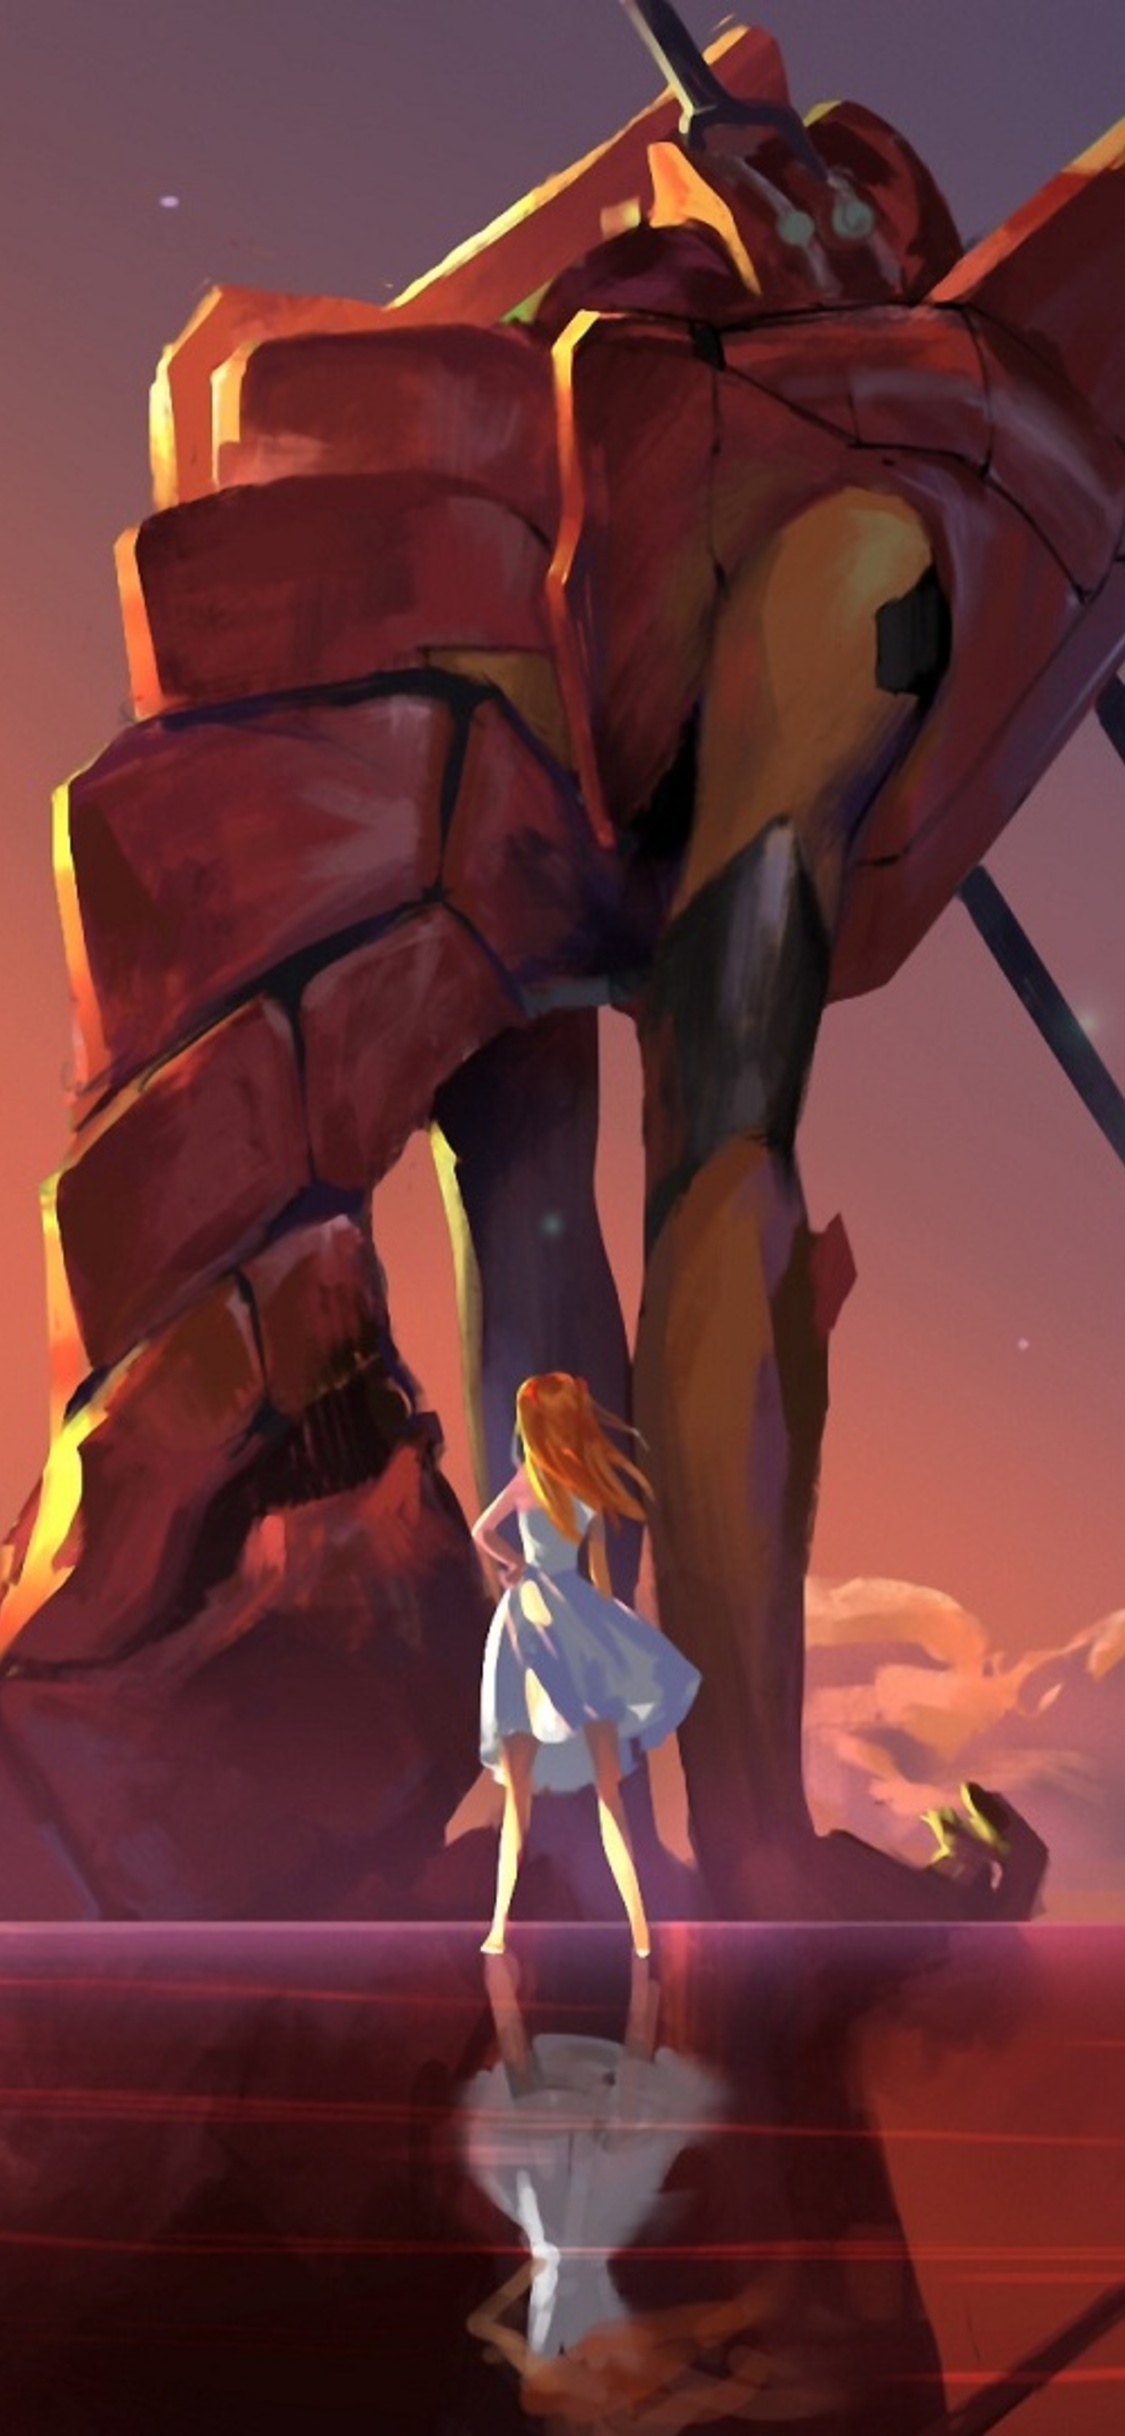 Neon Genesis Evangelion Wallpaper 4k : genesis, evangelion, wallpaper, 1125x2436, Genesis, Evangelion, Iphone, XS,Iphone, 10,Iphone, Wallpapers,, Images,, Backgrounds,, Photos, Pictures